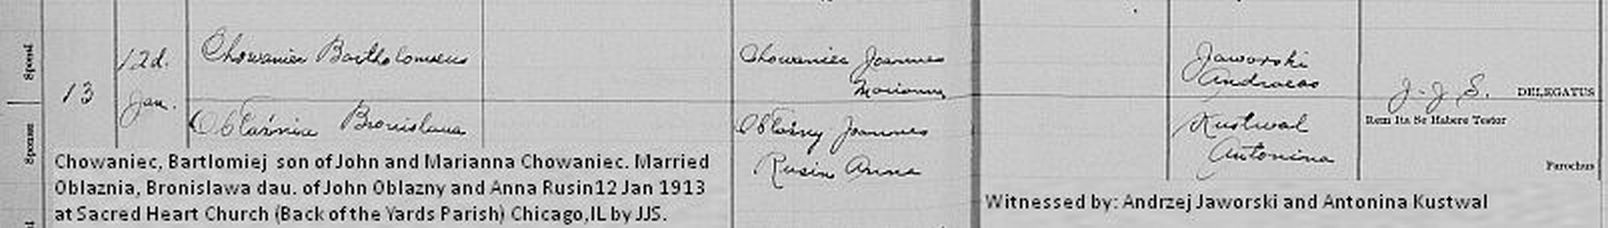 Bartlomiej -Bronislawa marriage record 1913.jpg